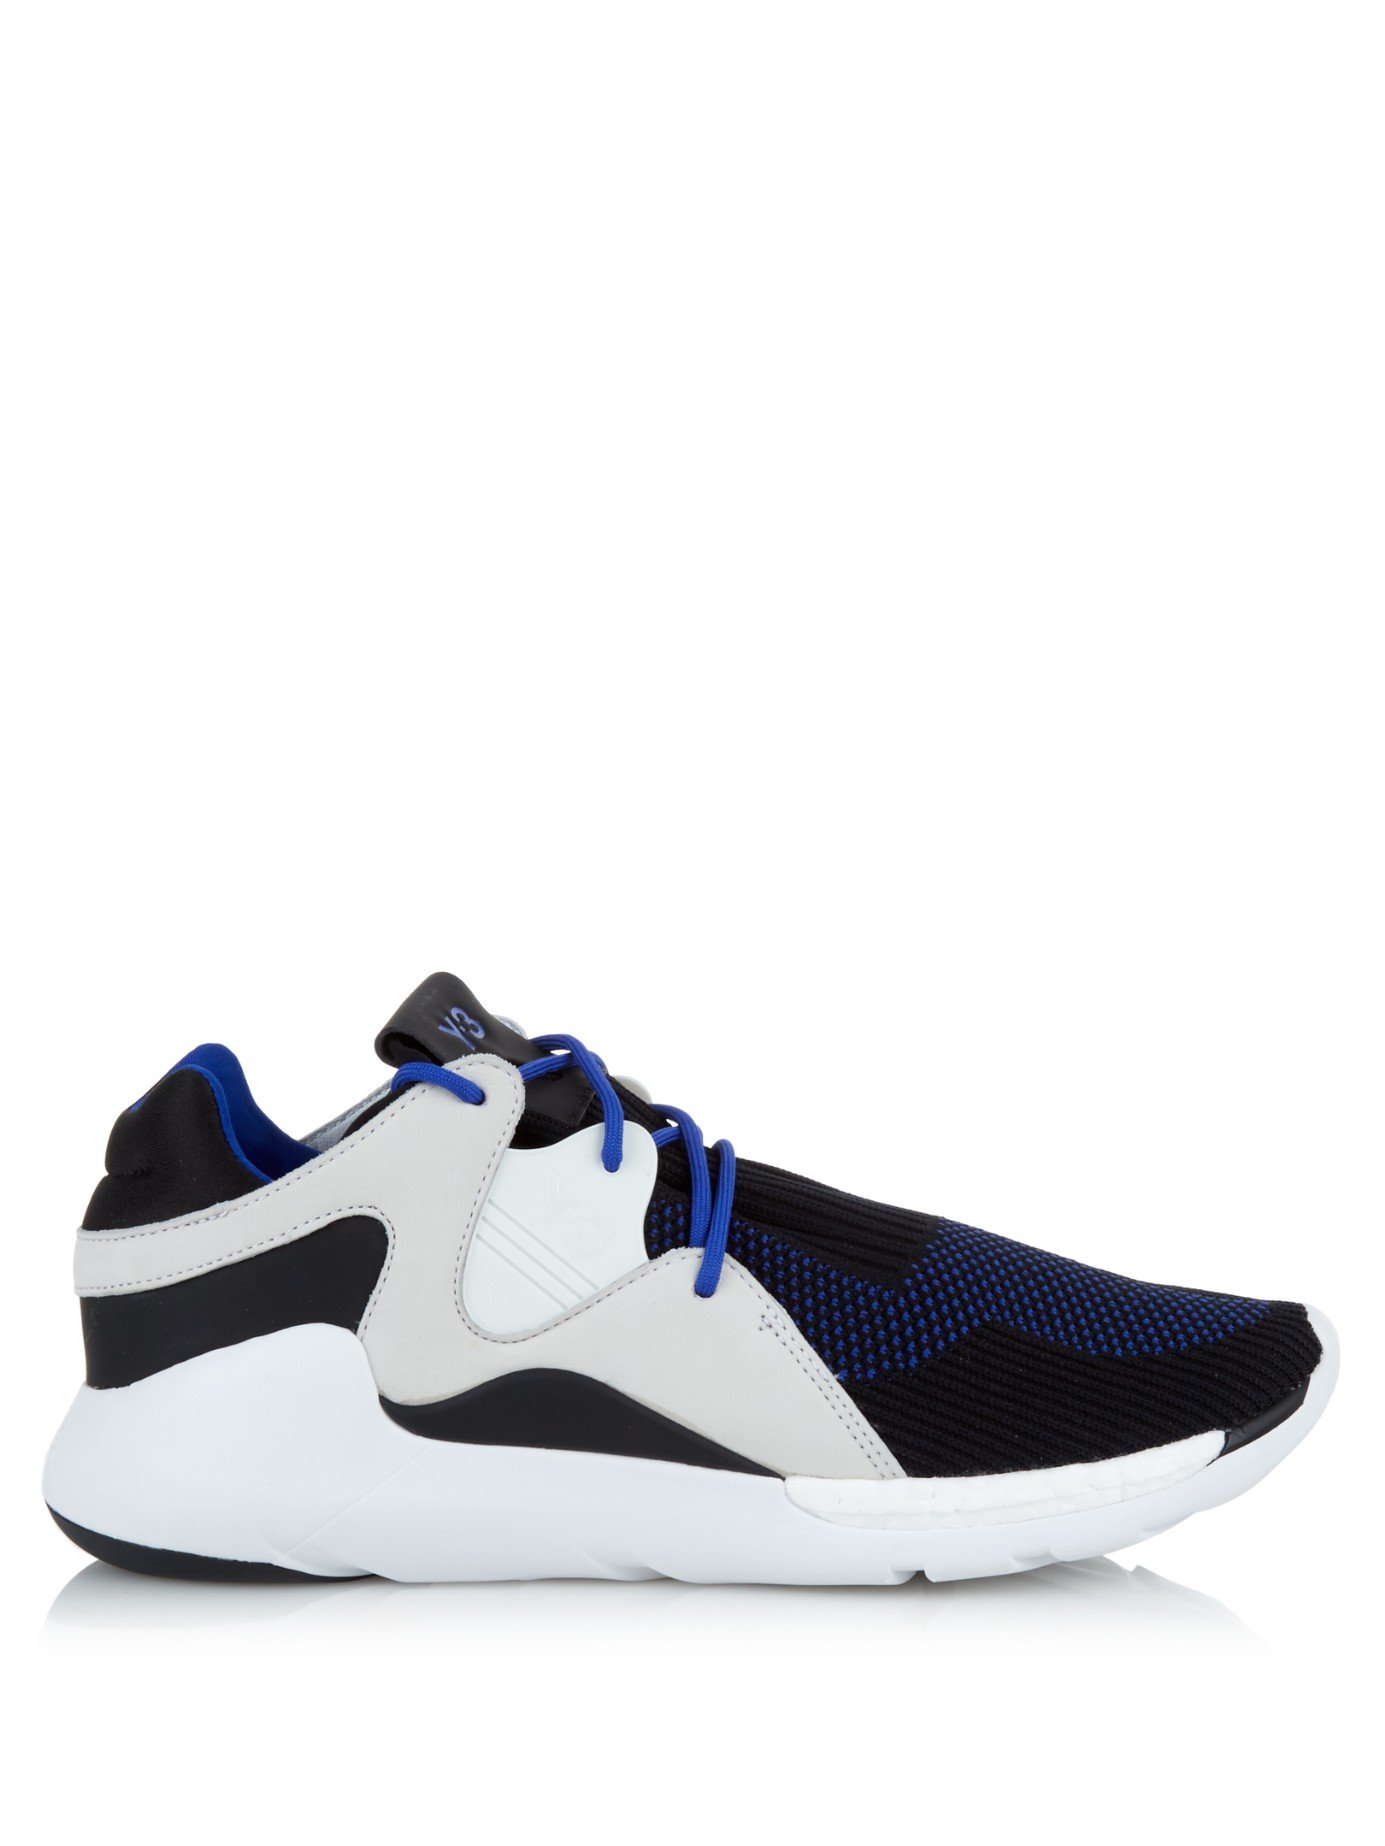 52ac7c899 Lyst - Y-3 Qr Run Low-top Knit Trainers in Blue for Men